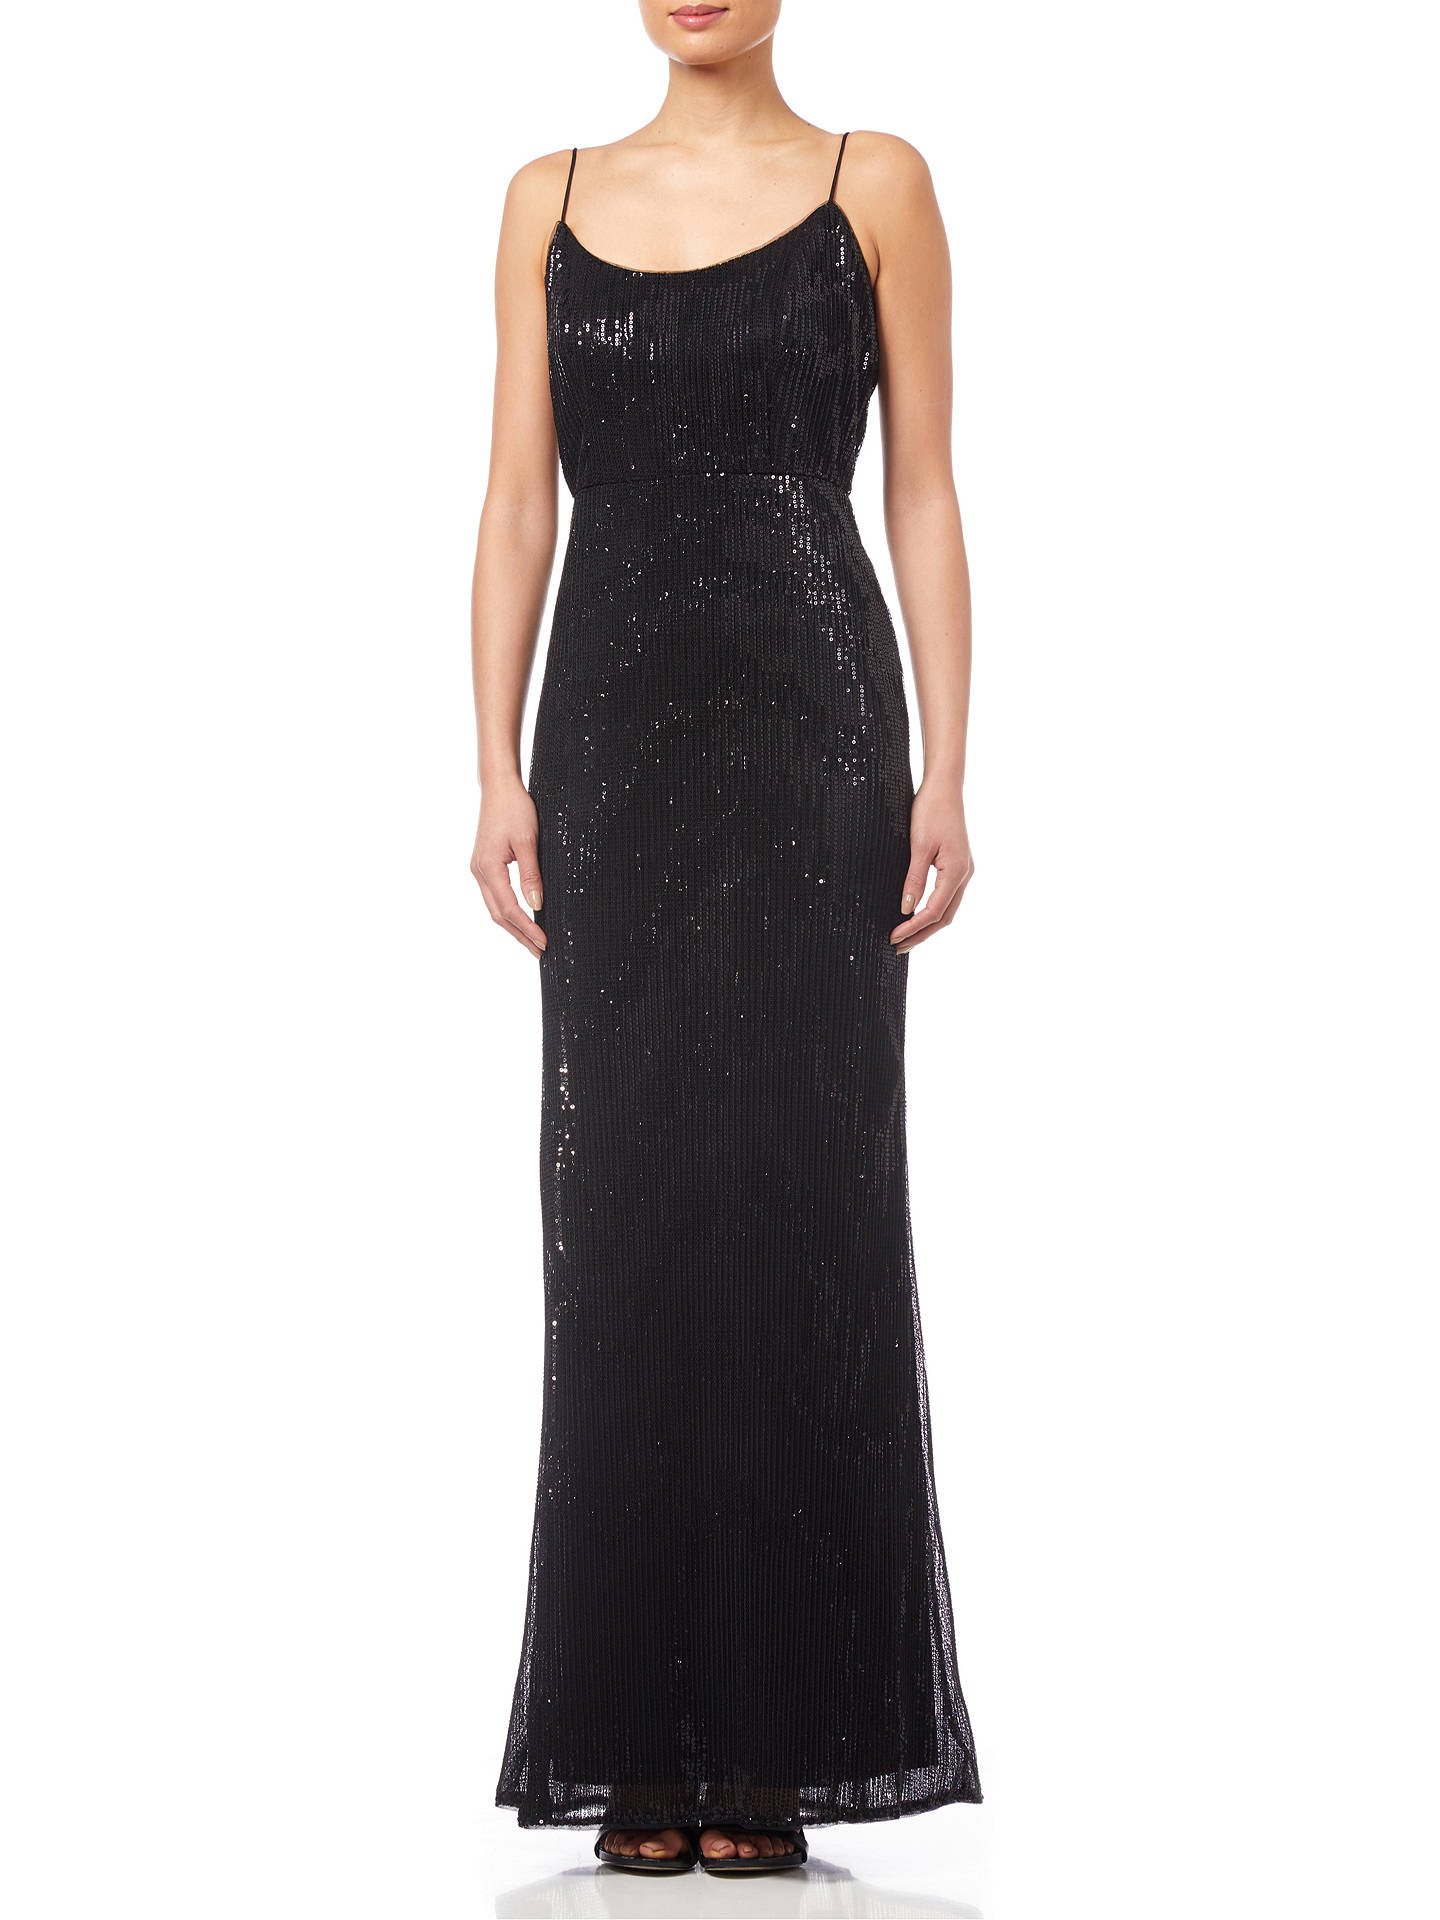 BuyAdrianna Papell Pleated Sequin Dress, Black, 8 Online at johnlewis.com